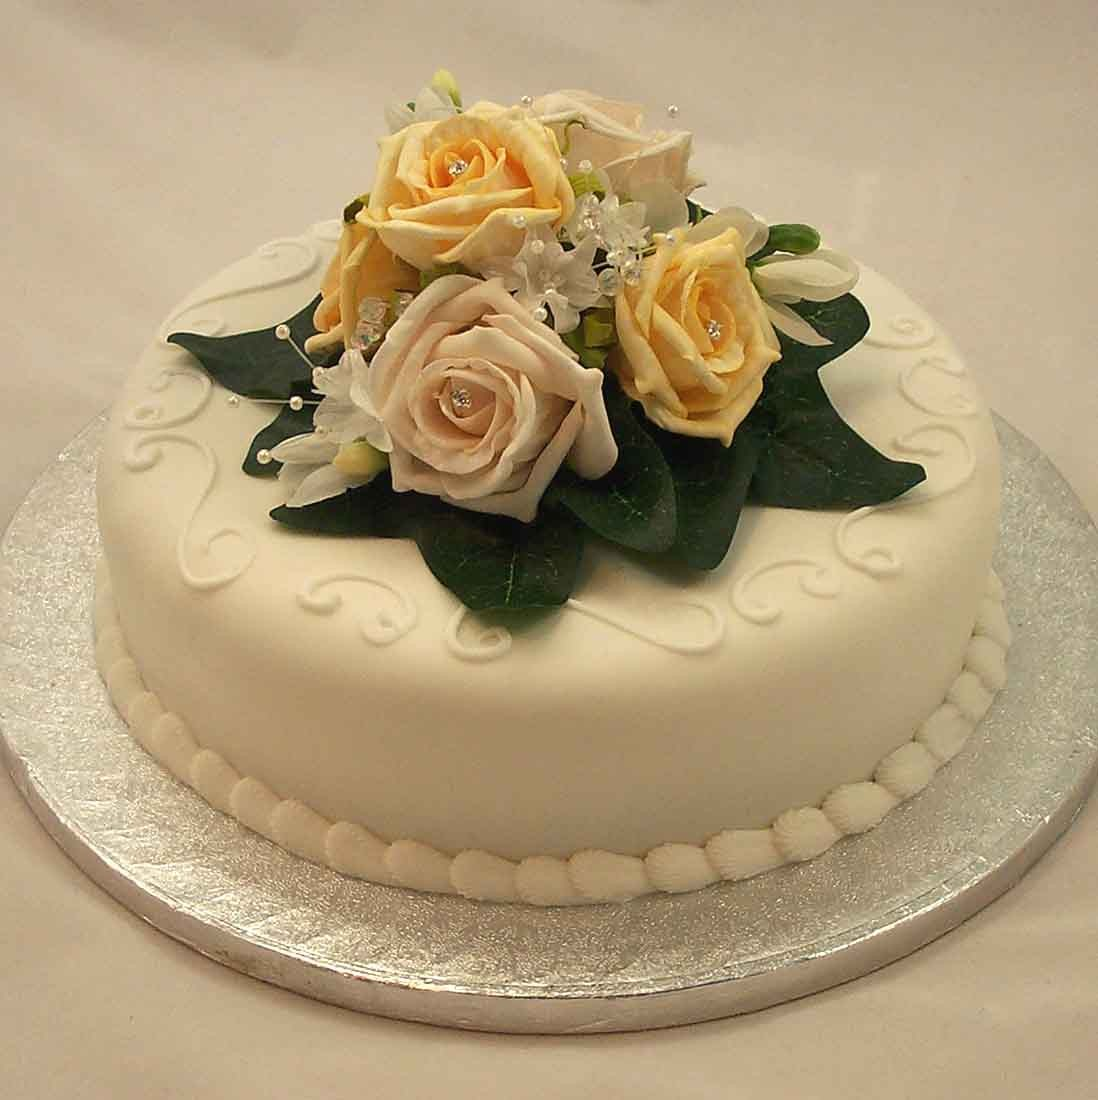 Yellow Flower Wedding Cake Topper - Flowers Healthy